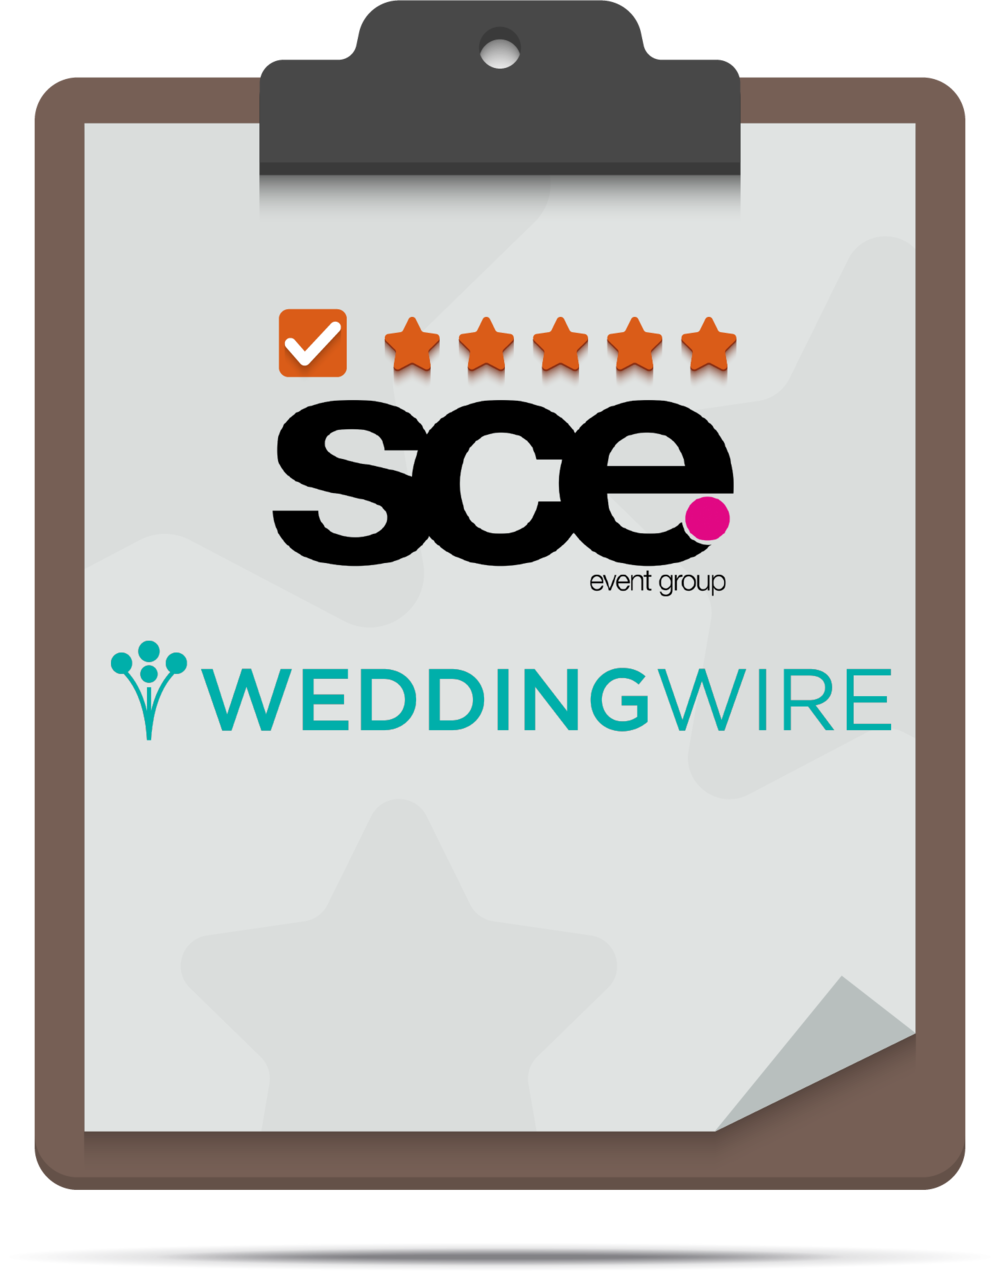 Please click here to review SCE on WeddingWire